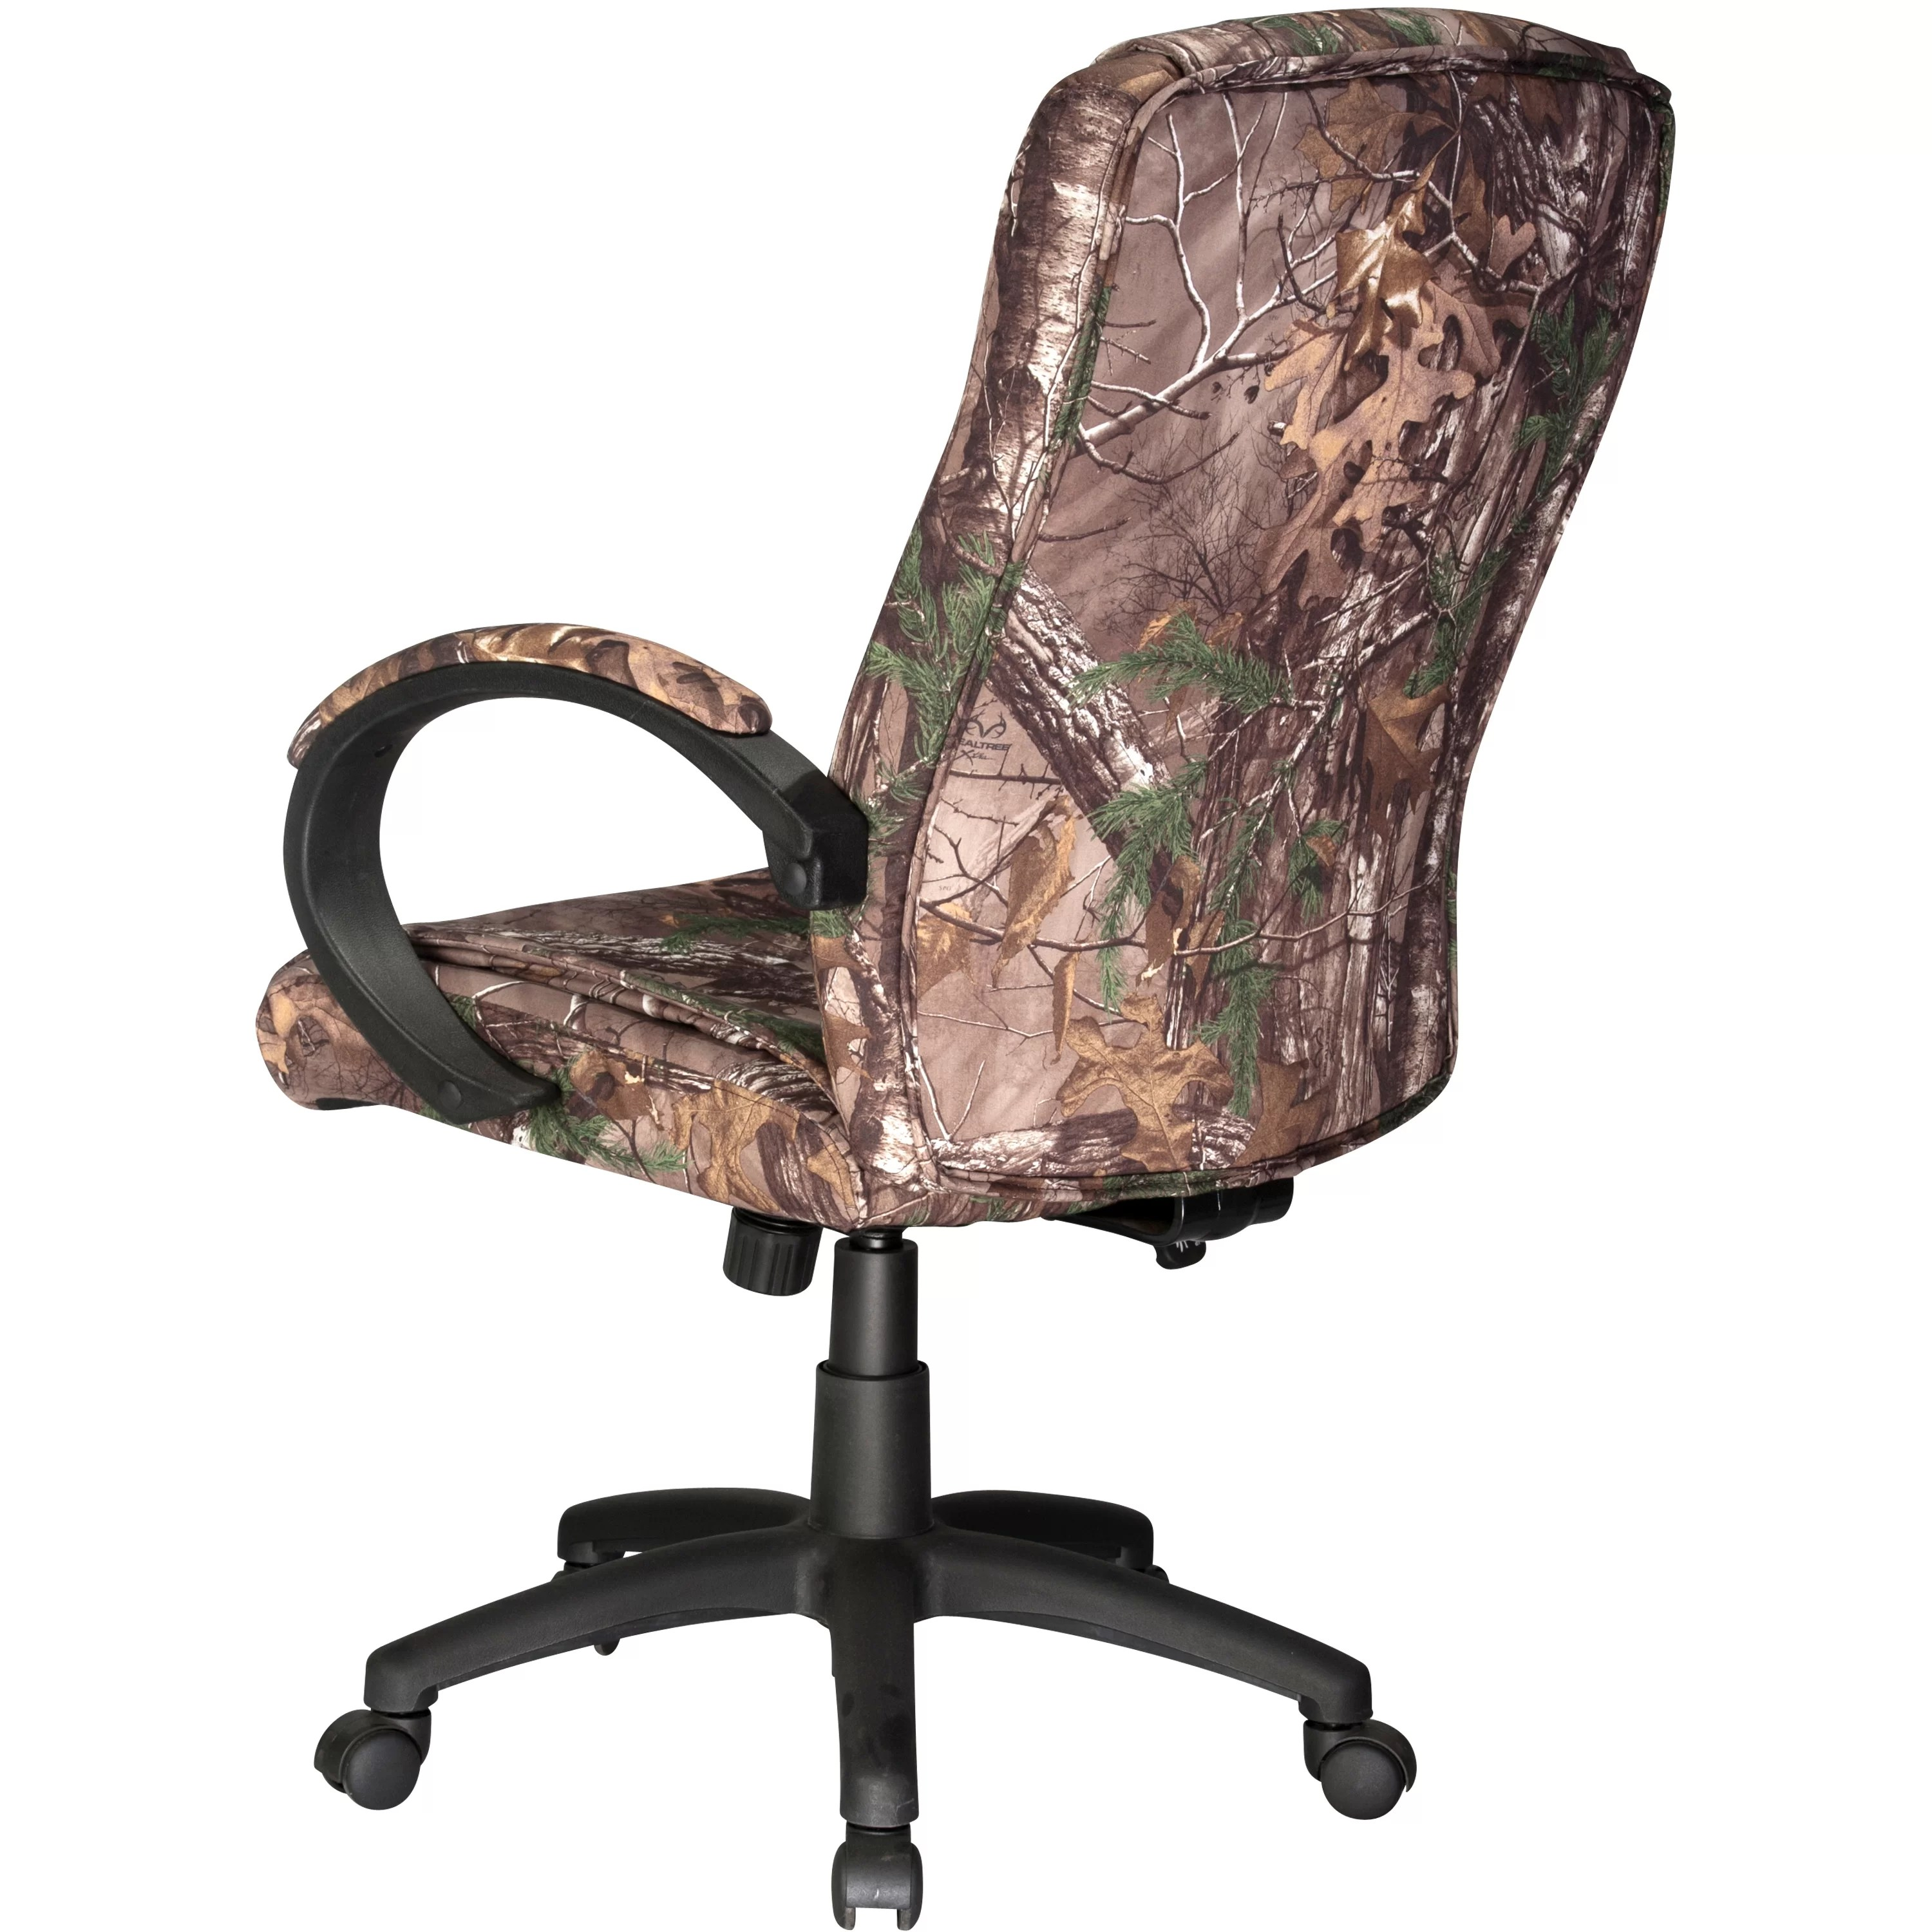 Realtree Chair Comfort Products Realtree Relaxzen High Back Executive